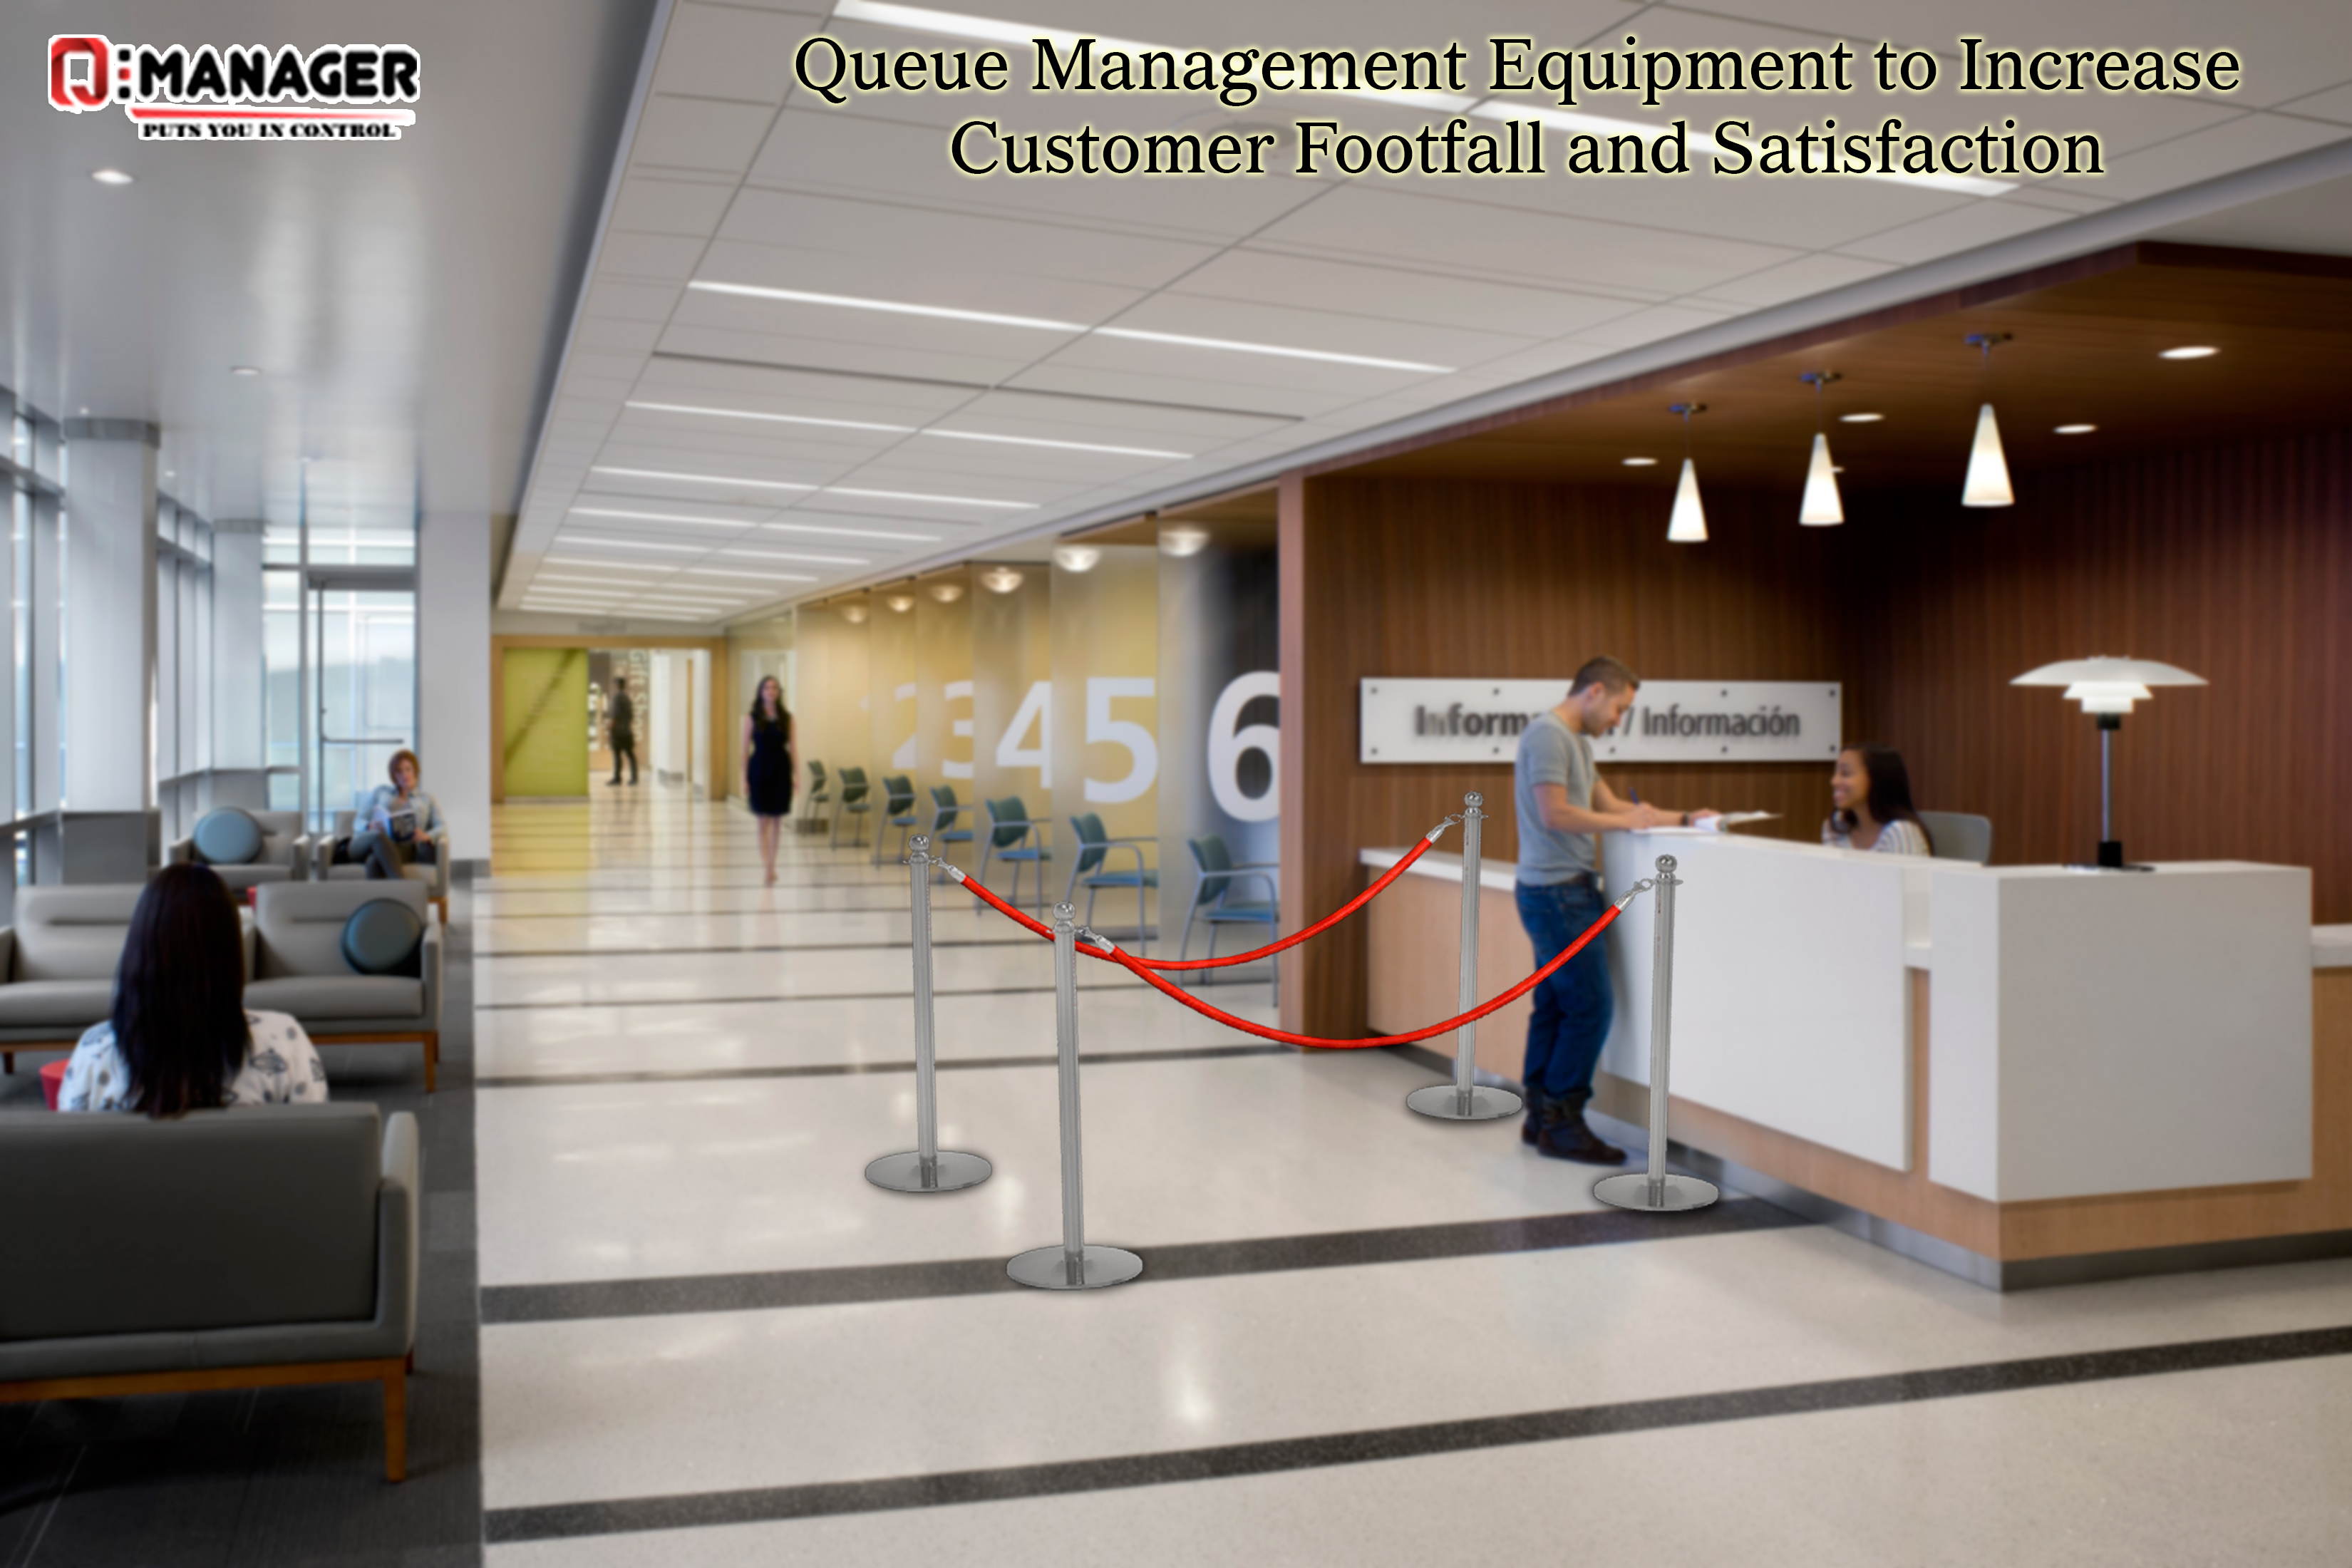 Queue Management Equipment to Increase Customer Footfall and Satisfaction